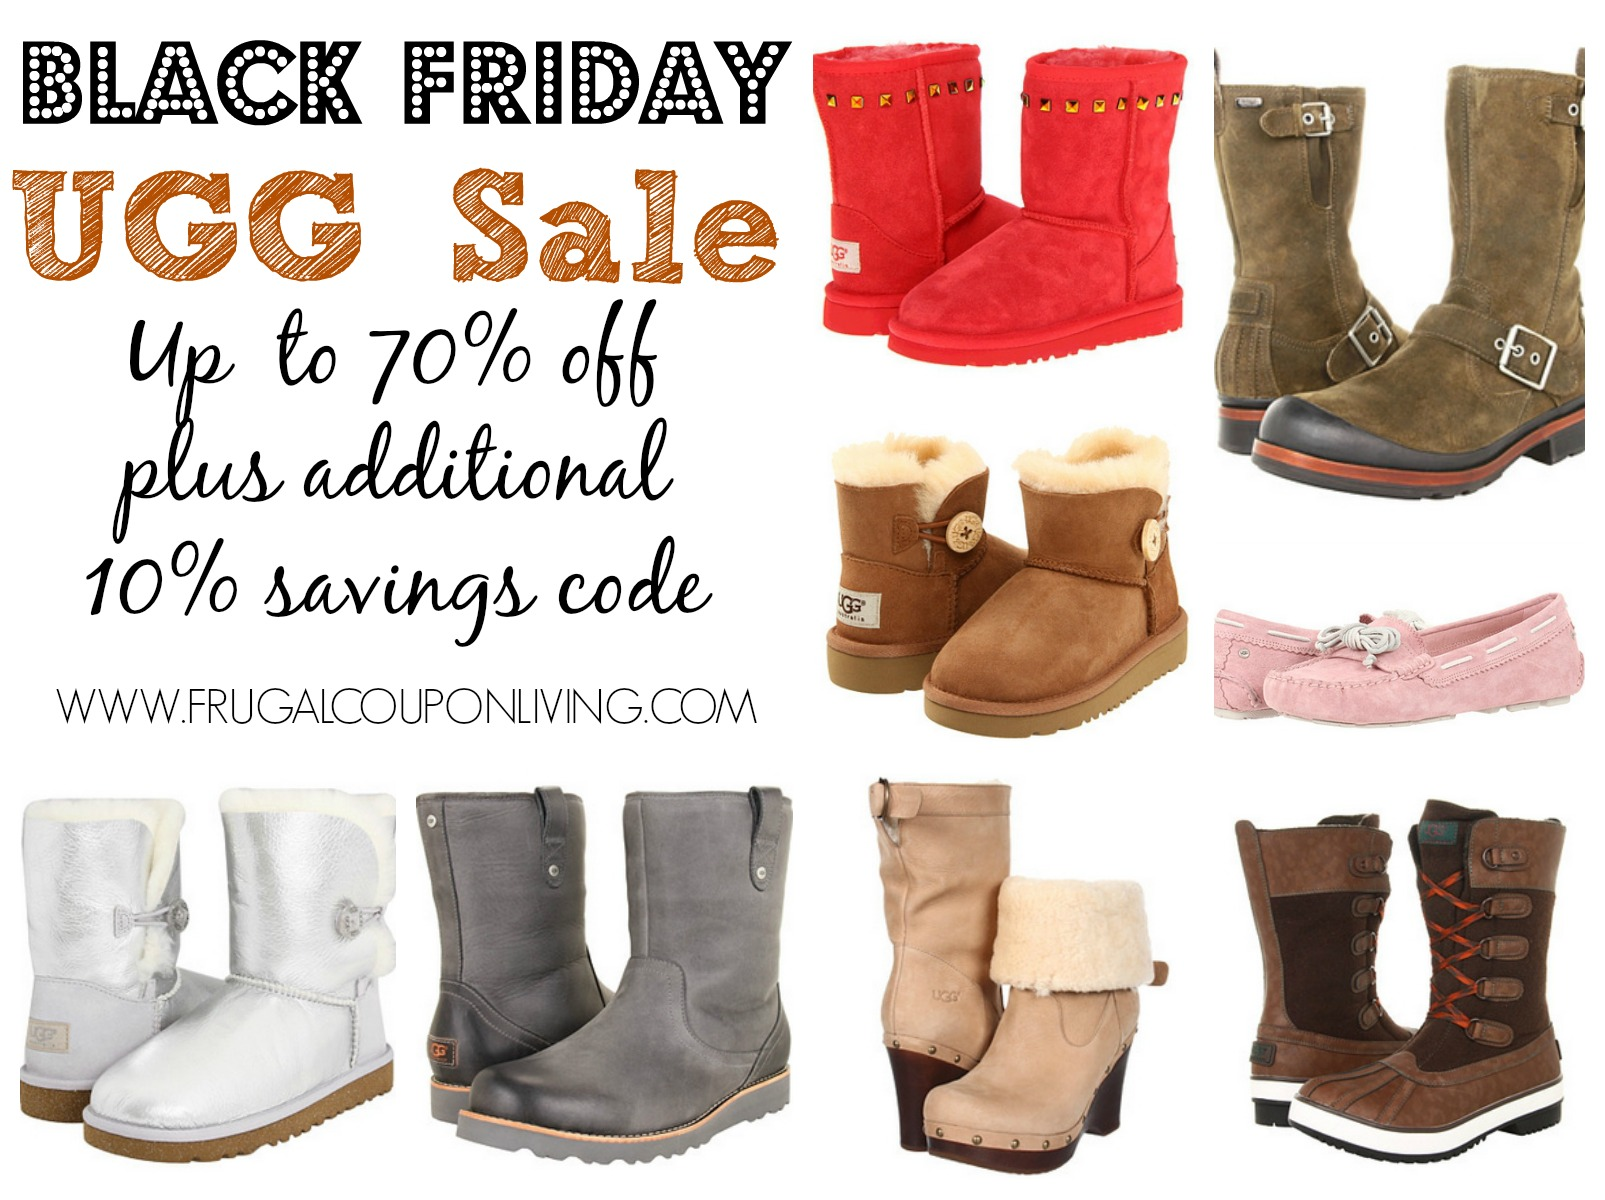 Black Friday Wo Black Friday Ugg Sale Up To 70 Off Plus 10 Coupon Code